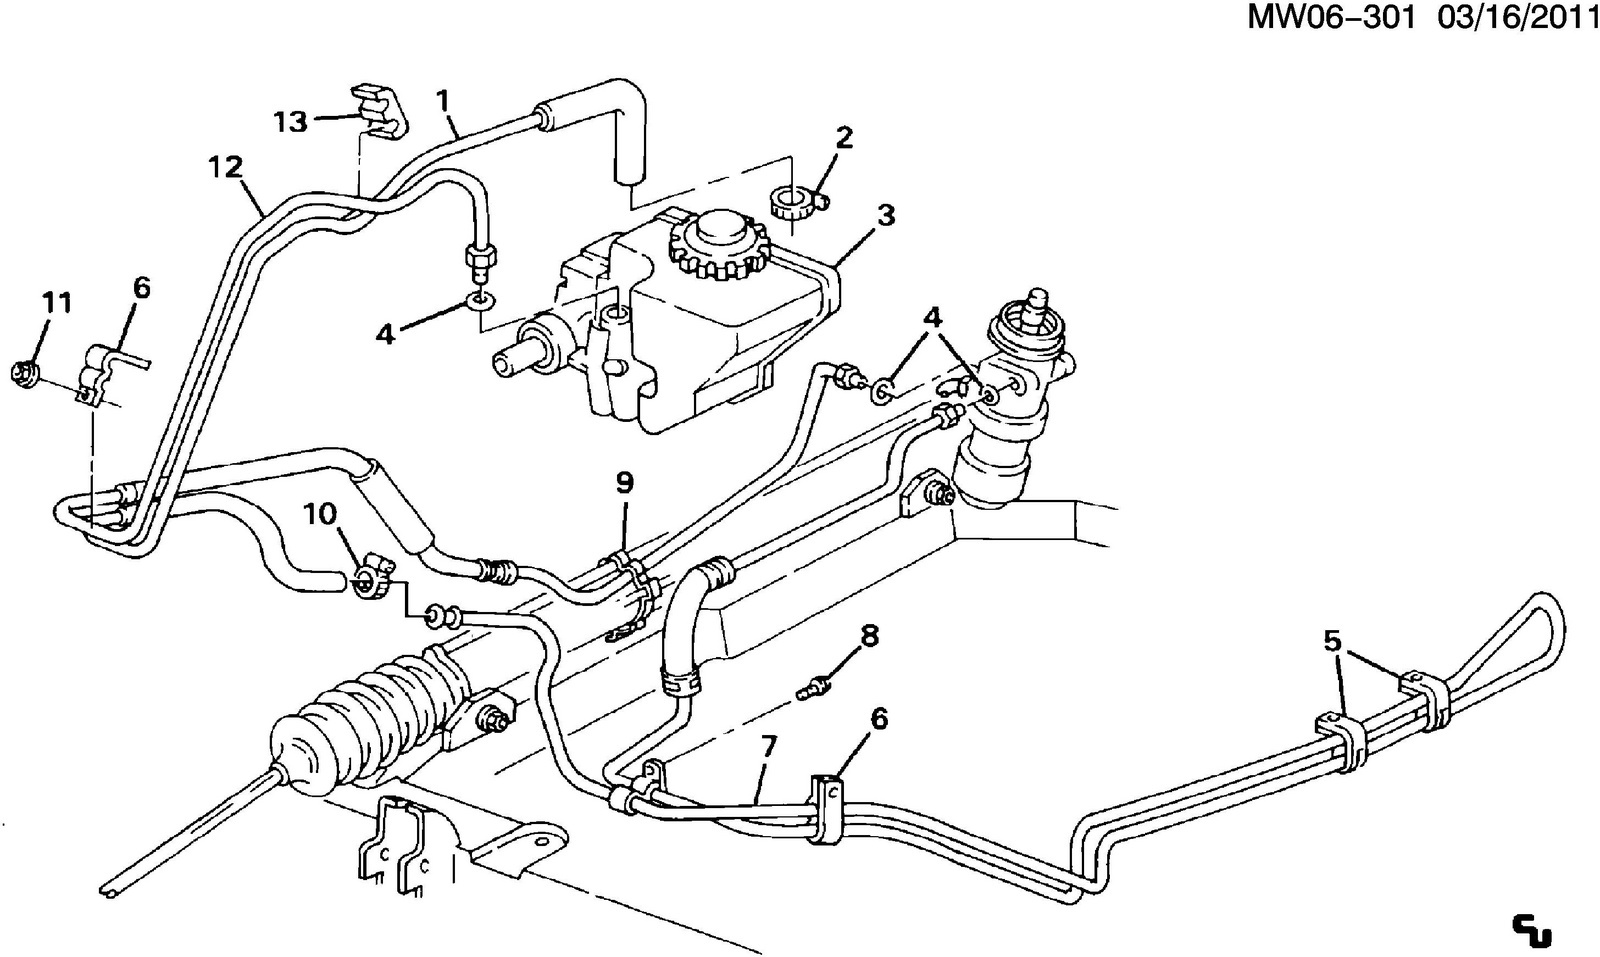 Discussion T16816 ds577757 besides T3554228 Electrical problem under dash remove likewise Chevrolet Express 5 3 2011 Specs And Images further How To Test The Ignition Coil Pack 1 moreover Transmission cooler lines rusted. on 1996 chevy monte carlo engine diagram